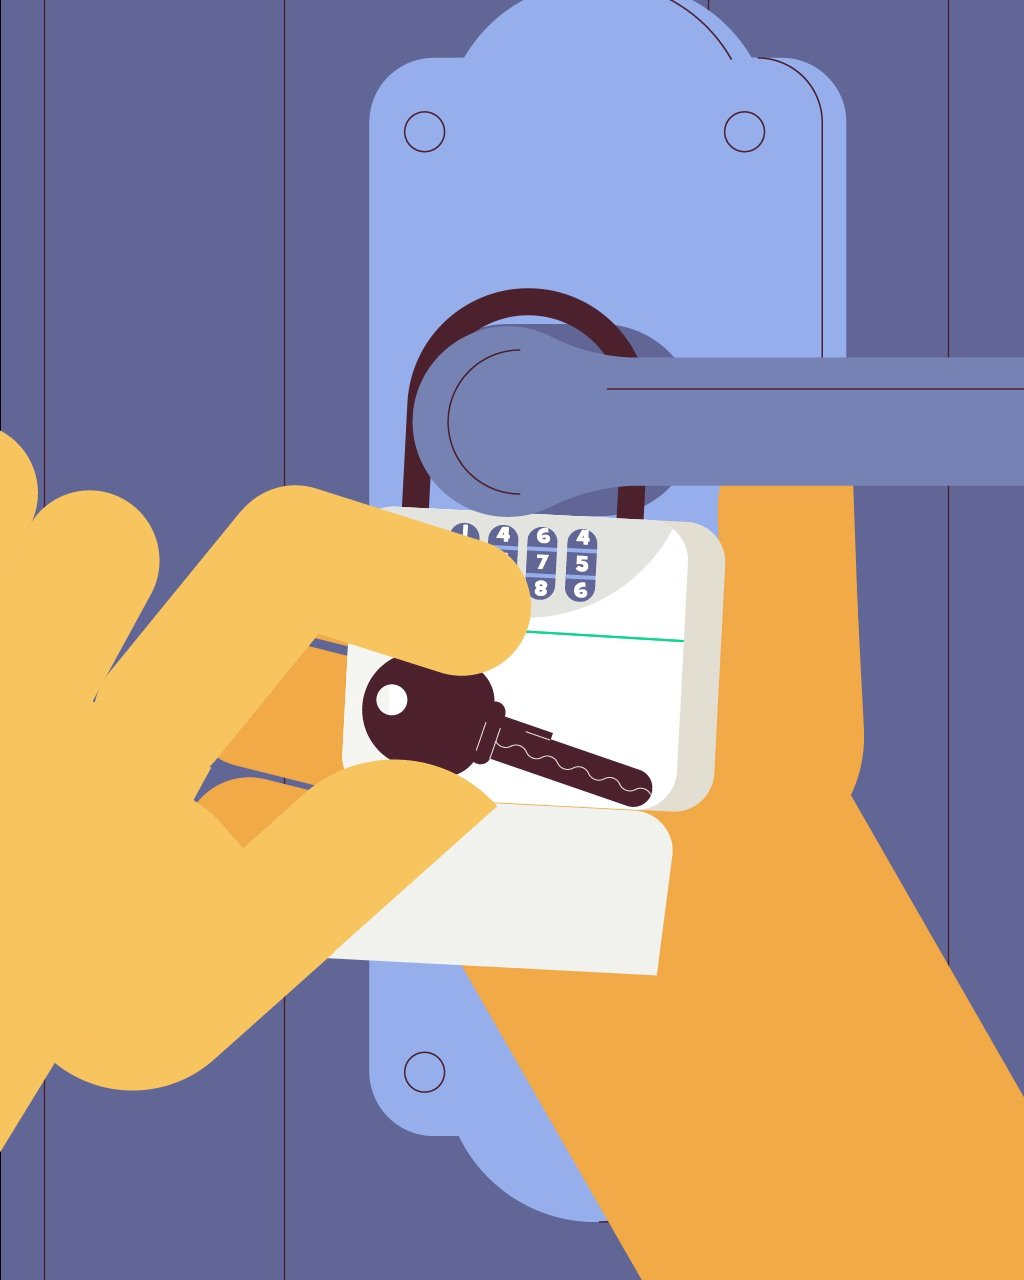 illustration for an explainer video animation made for Wag, a dog walking service. It shows someone holding a key in front of a door